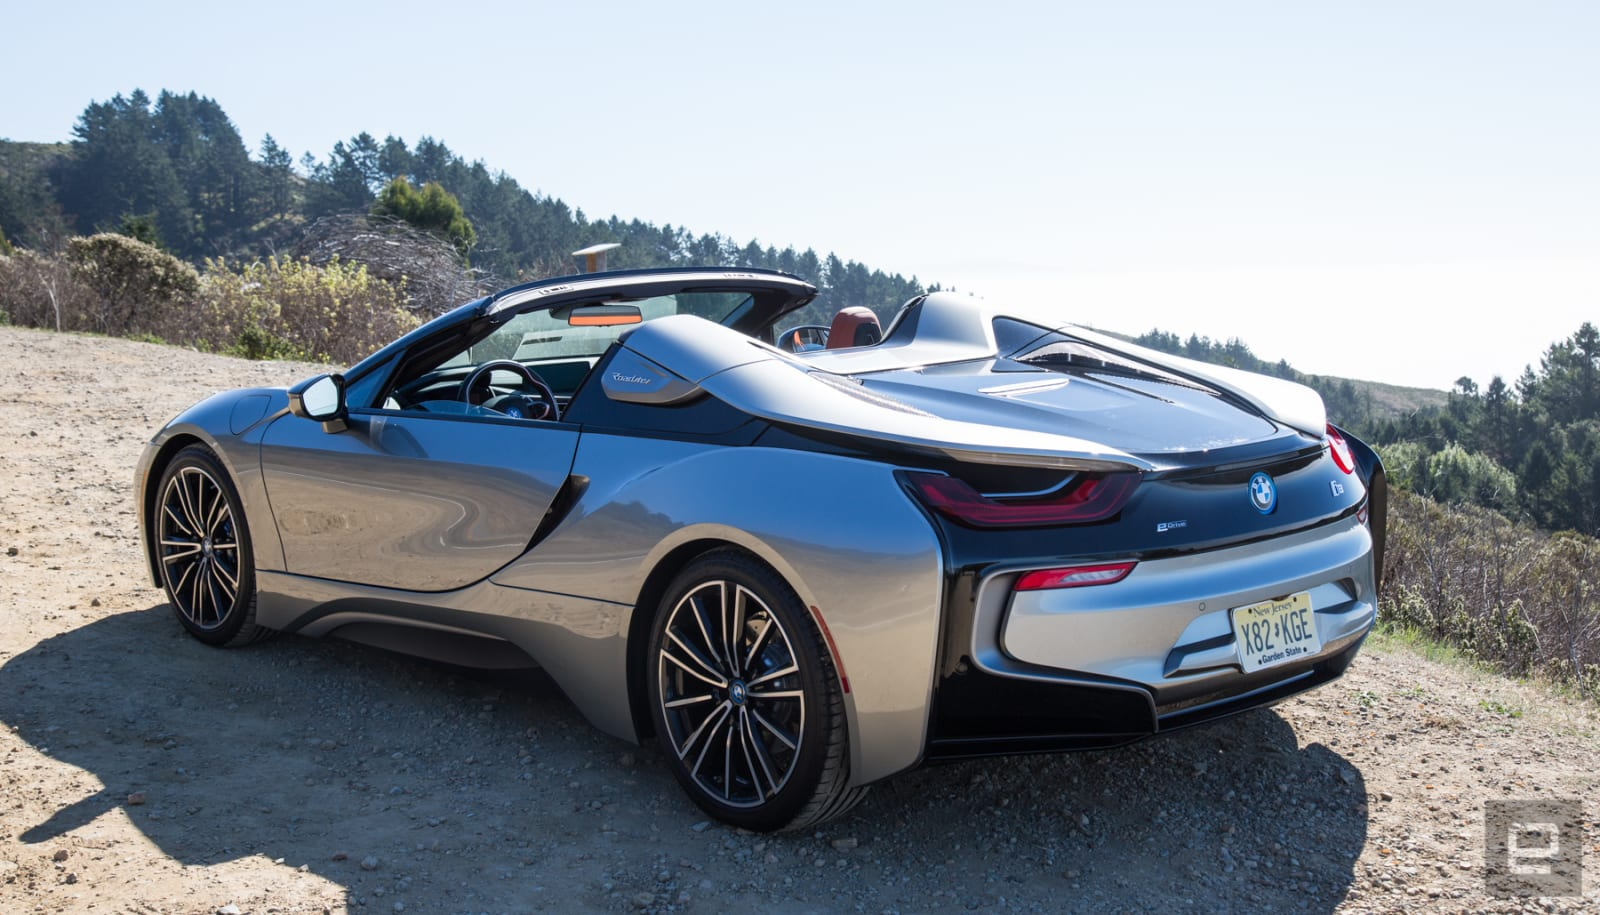 Bmw S I8 Roadster Is A Daily Driver In Supercar S Clothing